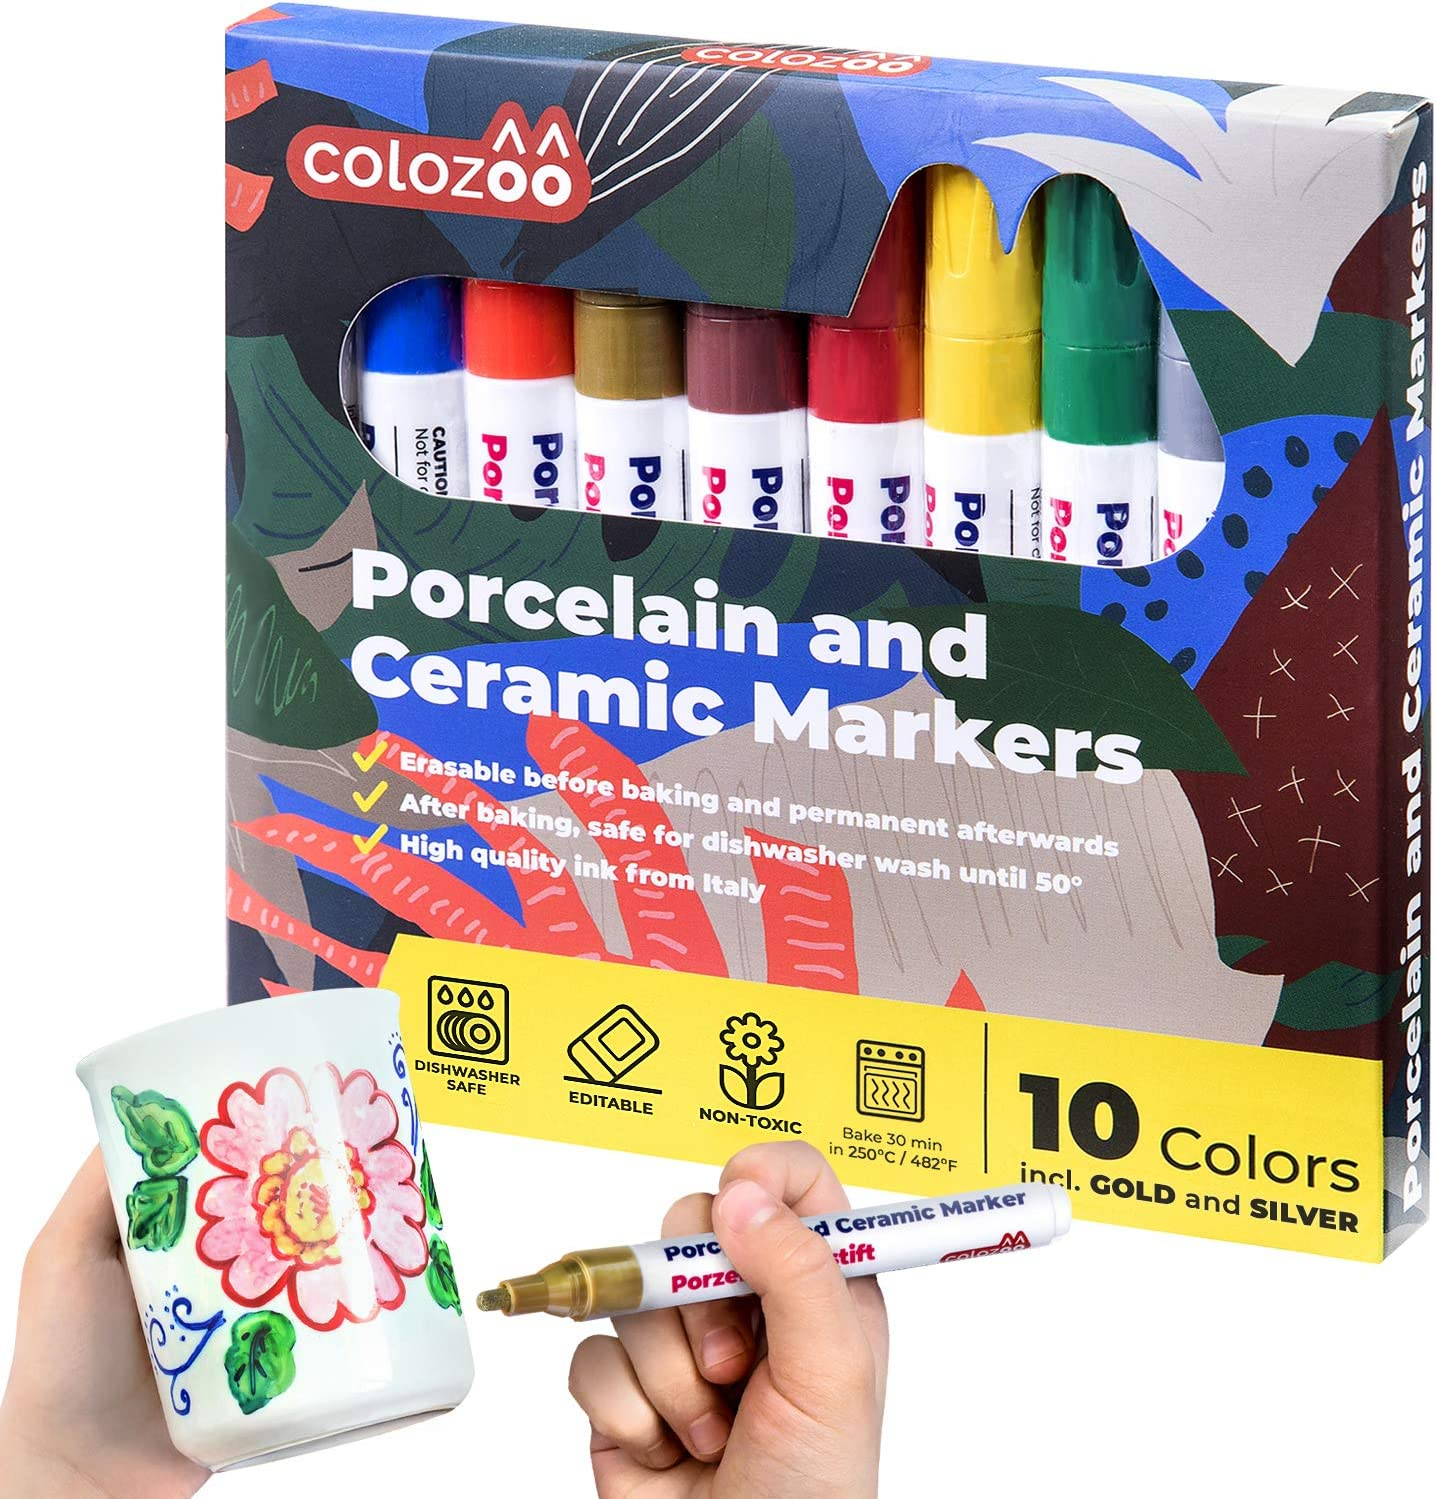 Colozoo Porcelain Markers Dishwasher Safe | 10 Bright Colors Ceramic Paint Pens Including Gold And Silver